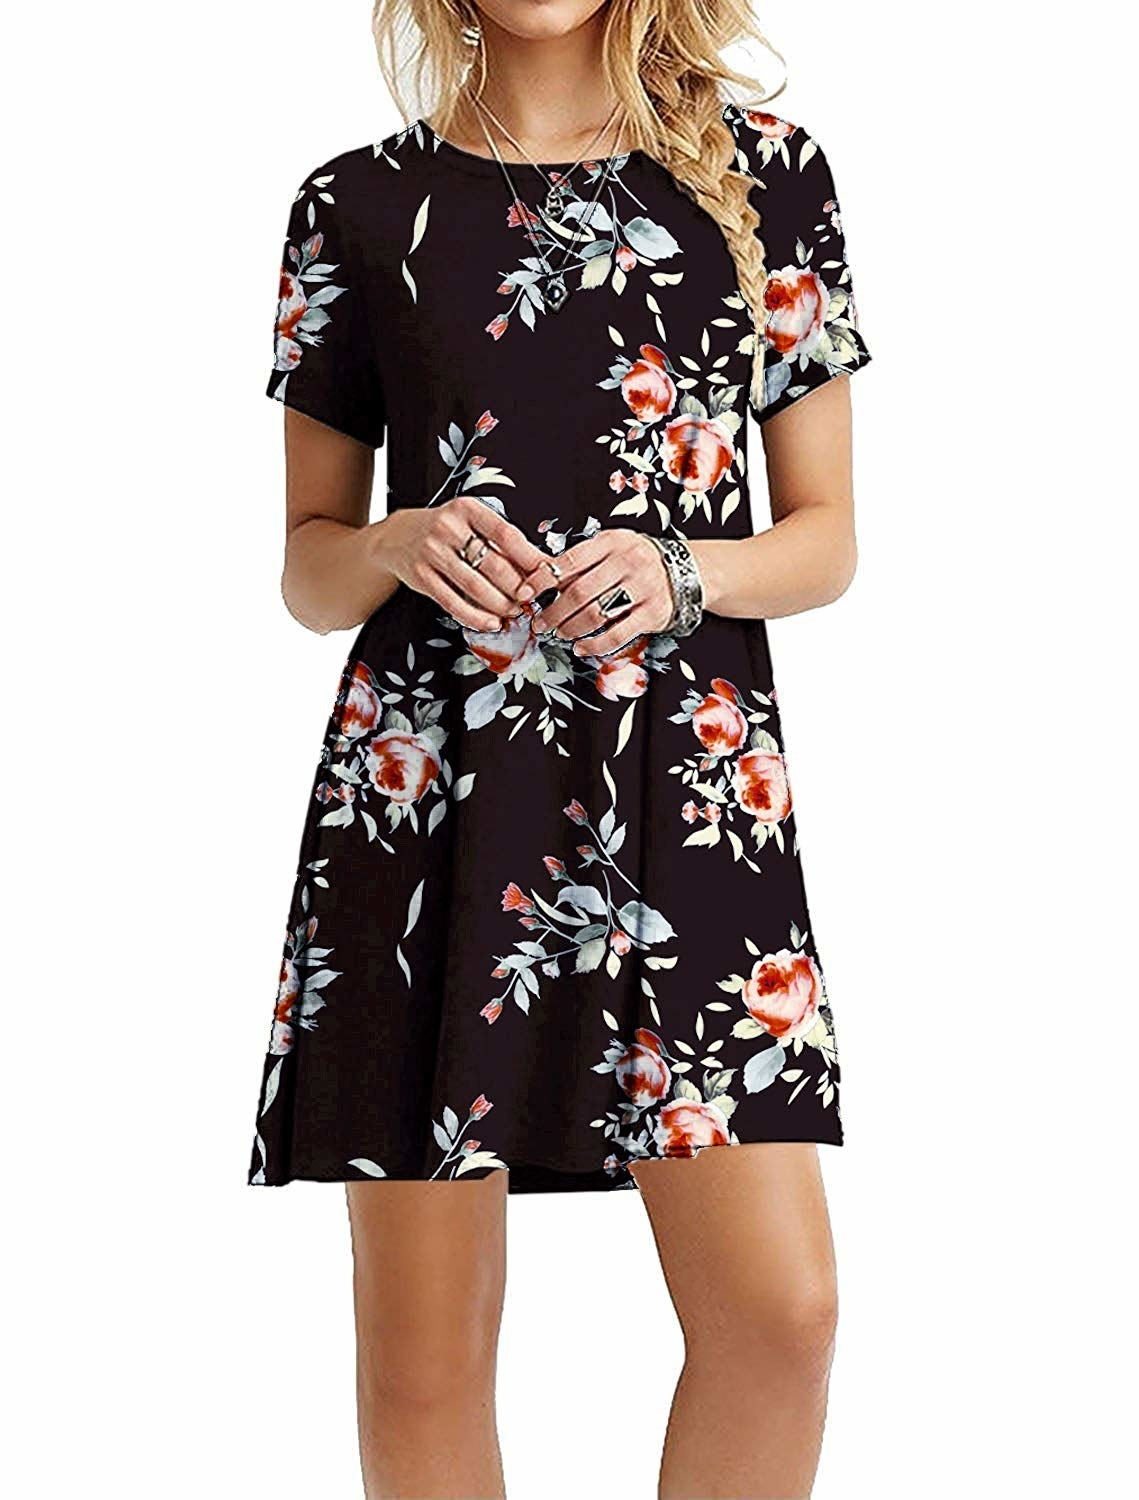 1352c988612 Or a short-sleeved T-shirt dress for folks who want equally endless styling  options but who (like me) are basically always hot.